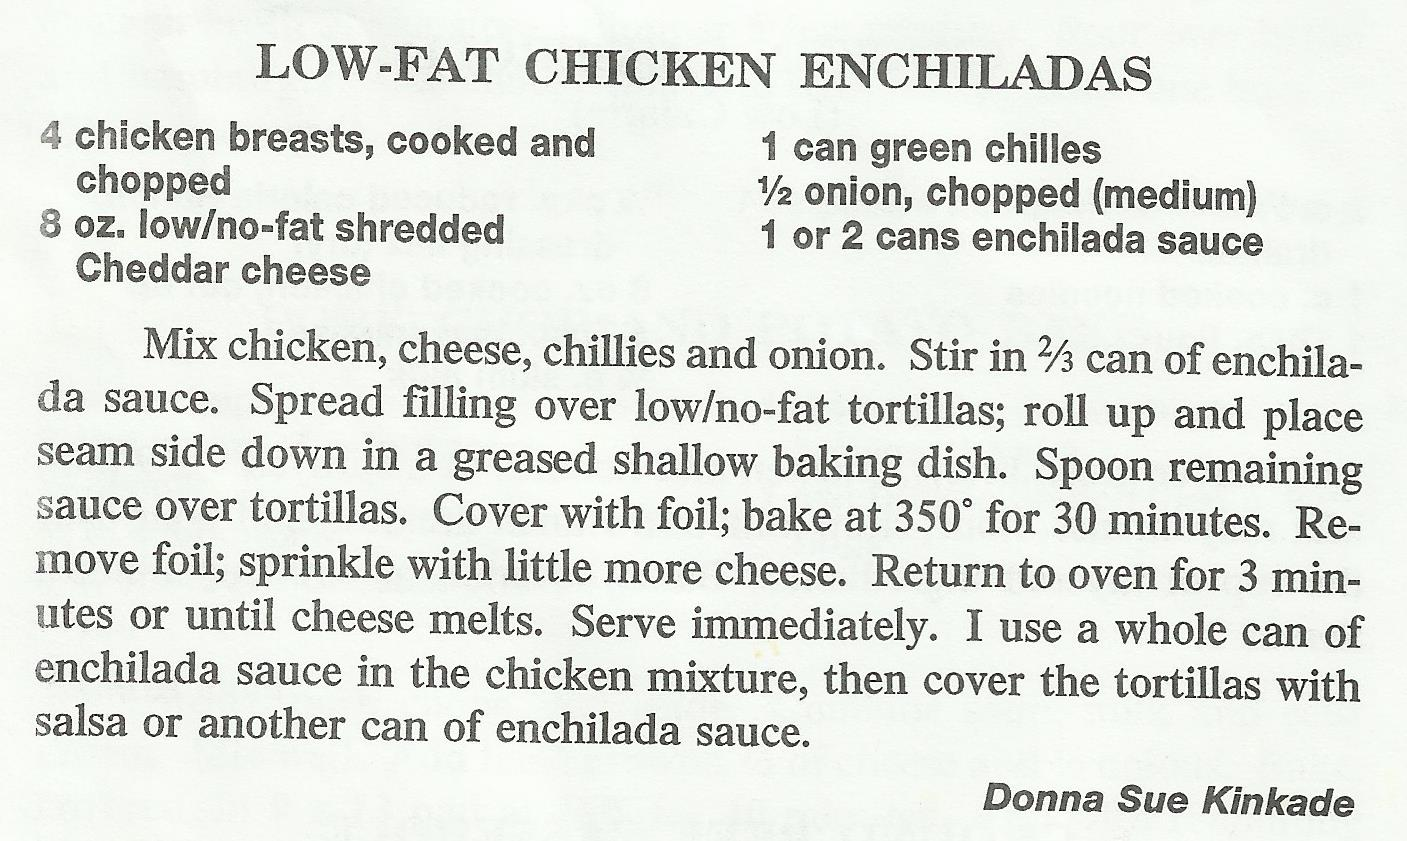 Low-Fat Chicken Enchiladas